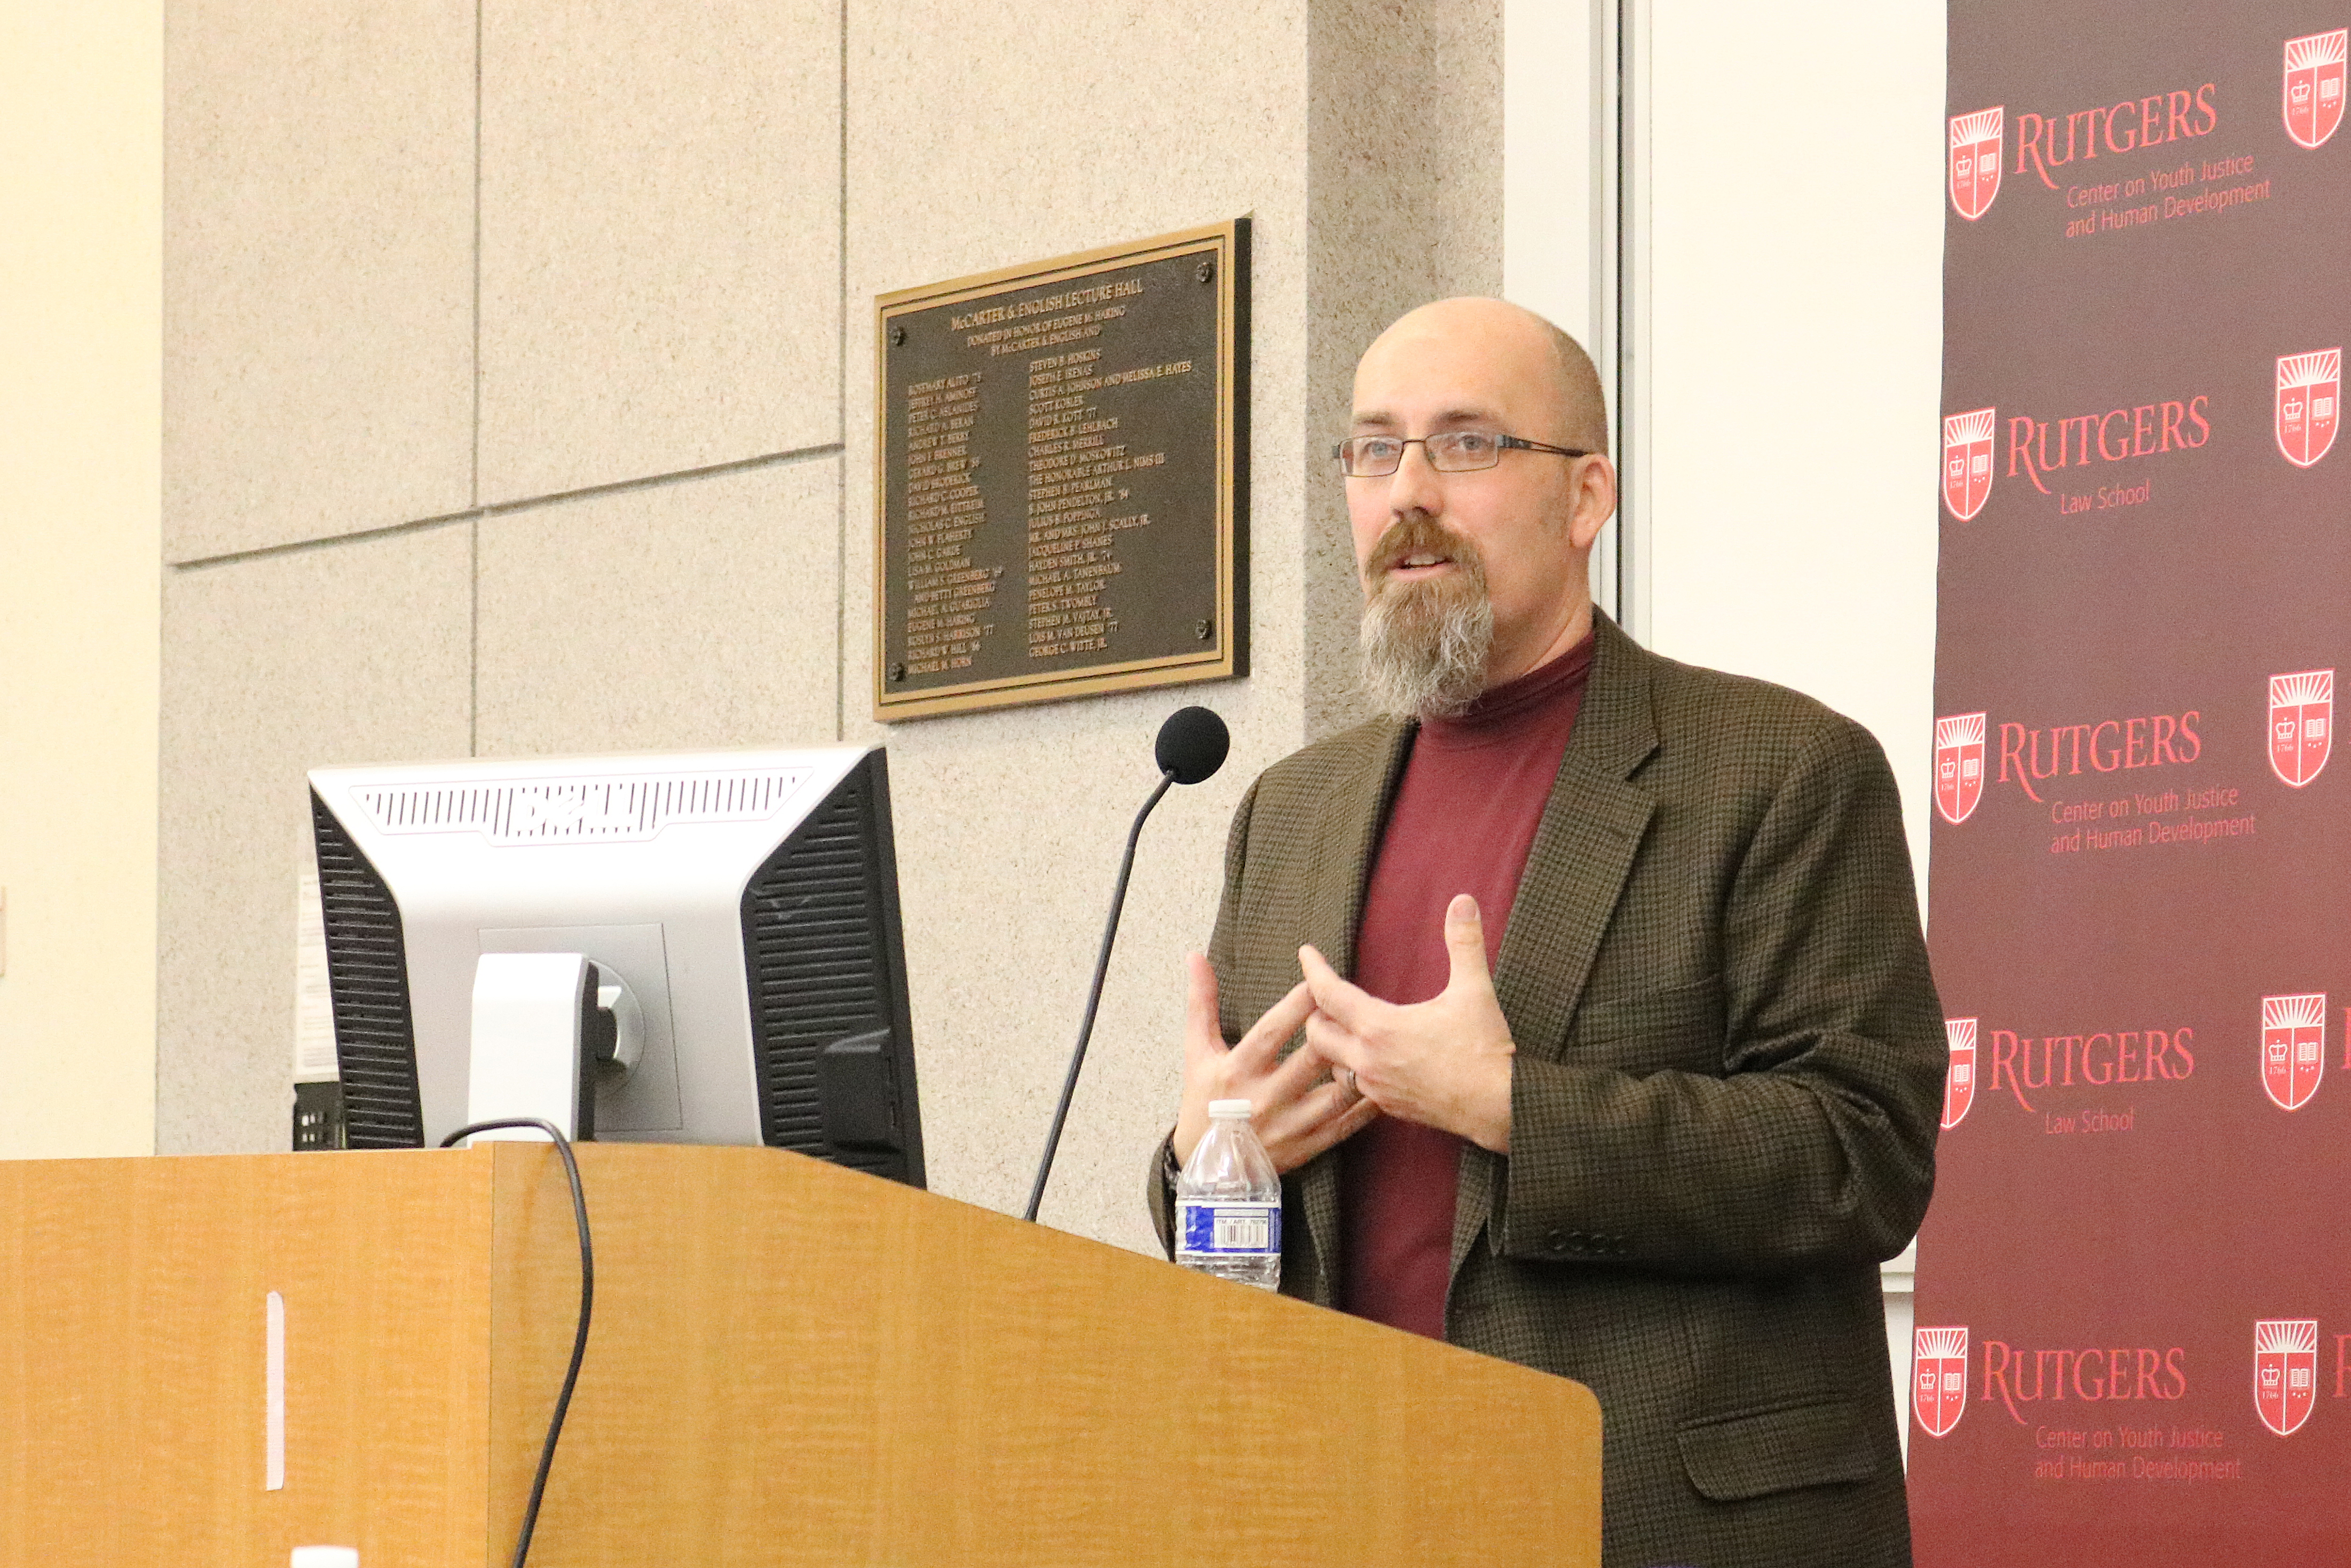 Paul Boxer, co-director of the Center on Youth Justice and Human Development